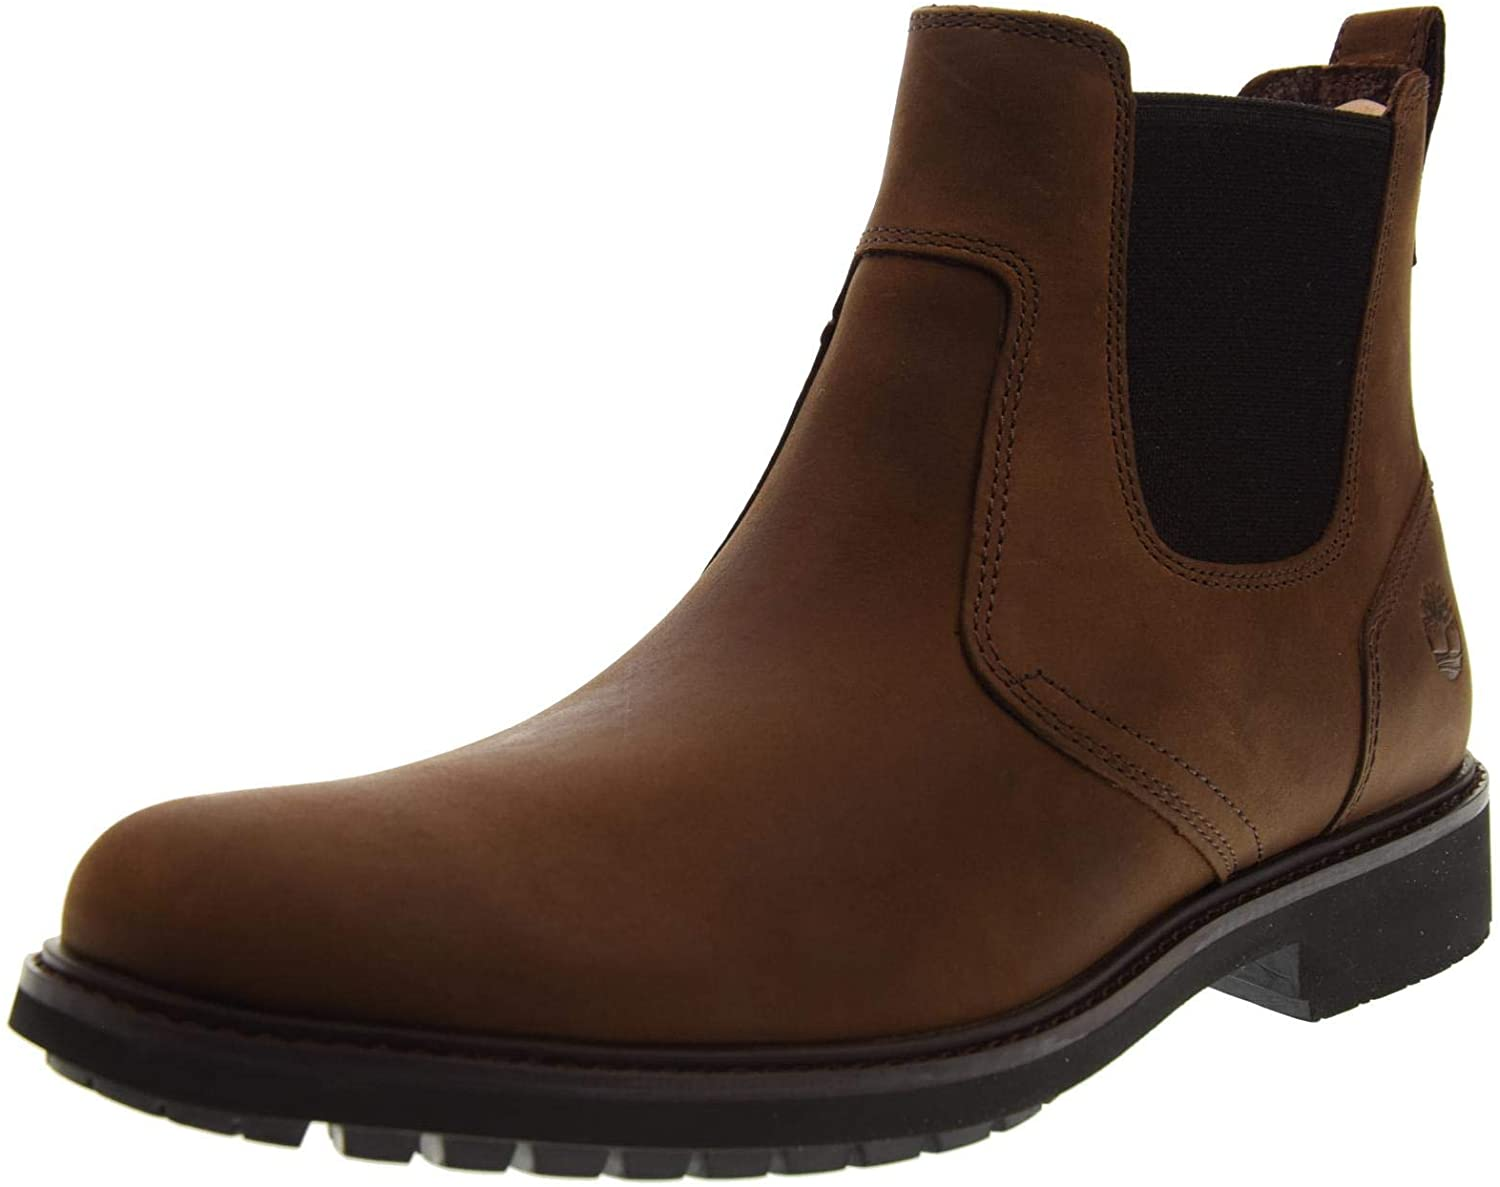 Timberland Mens Earthkeepers Stormbuck Chelsea Dark Brown Ankle Boots Size 7